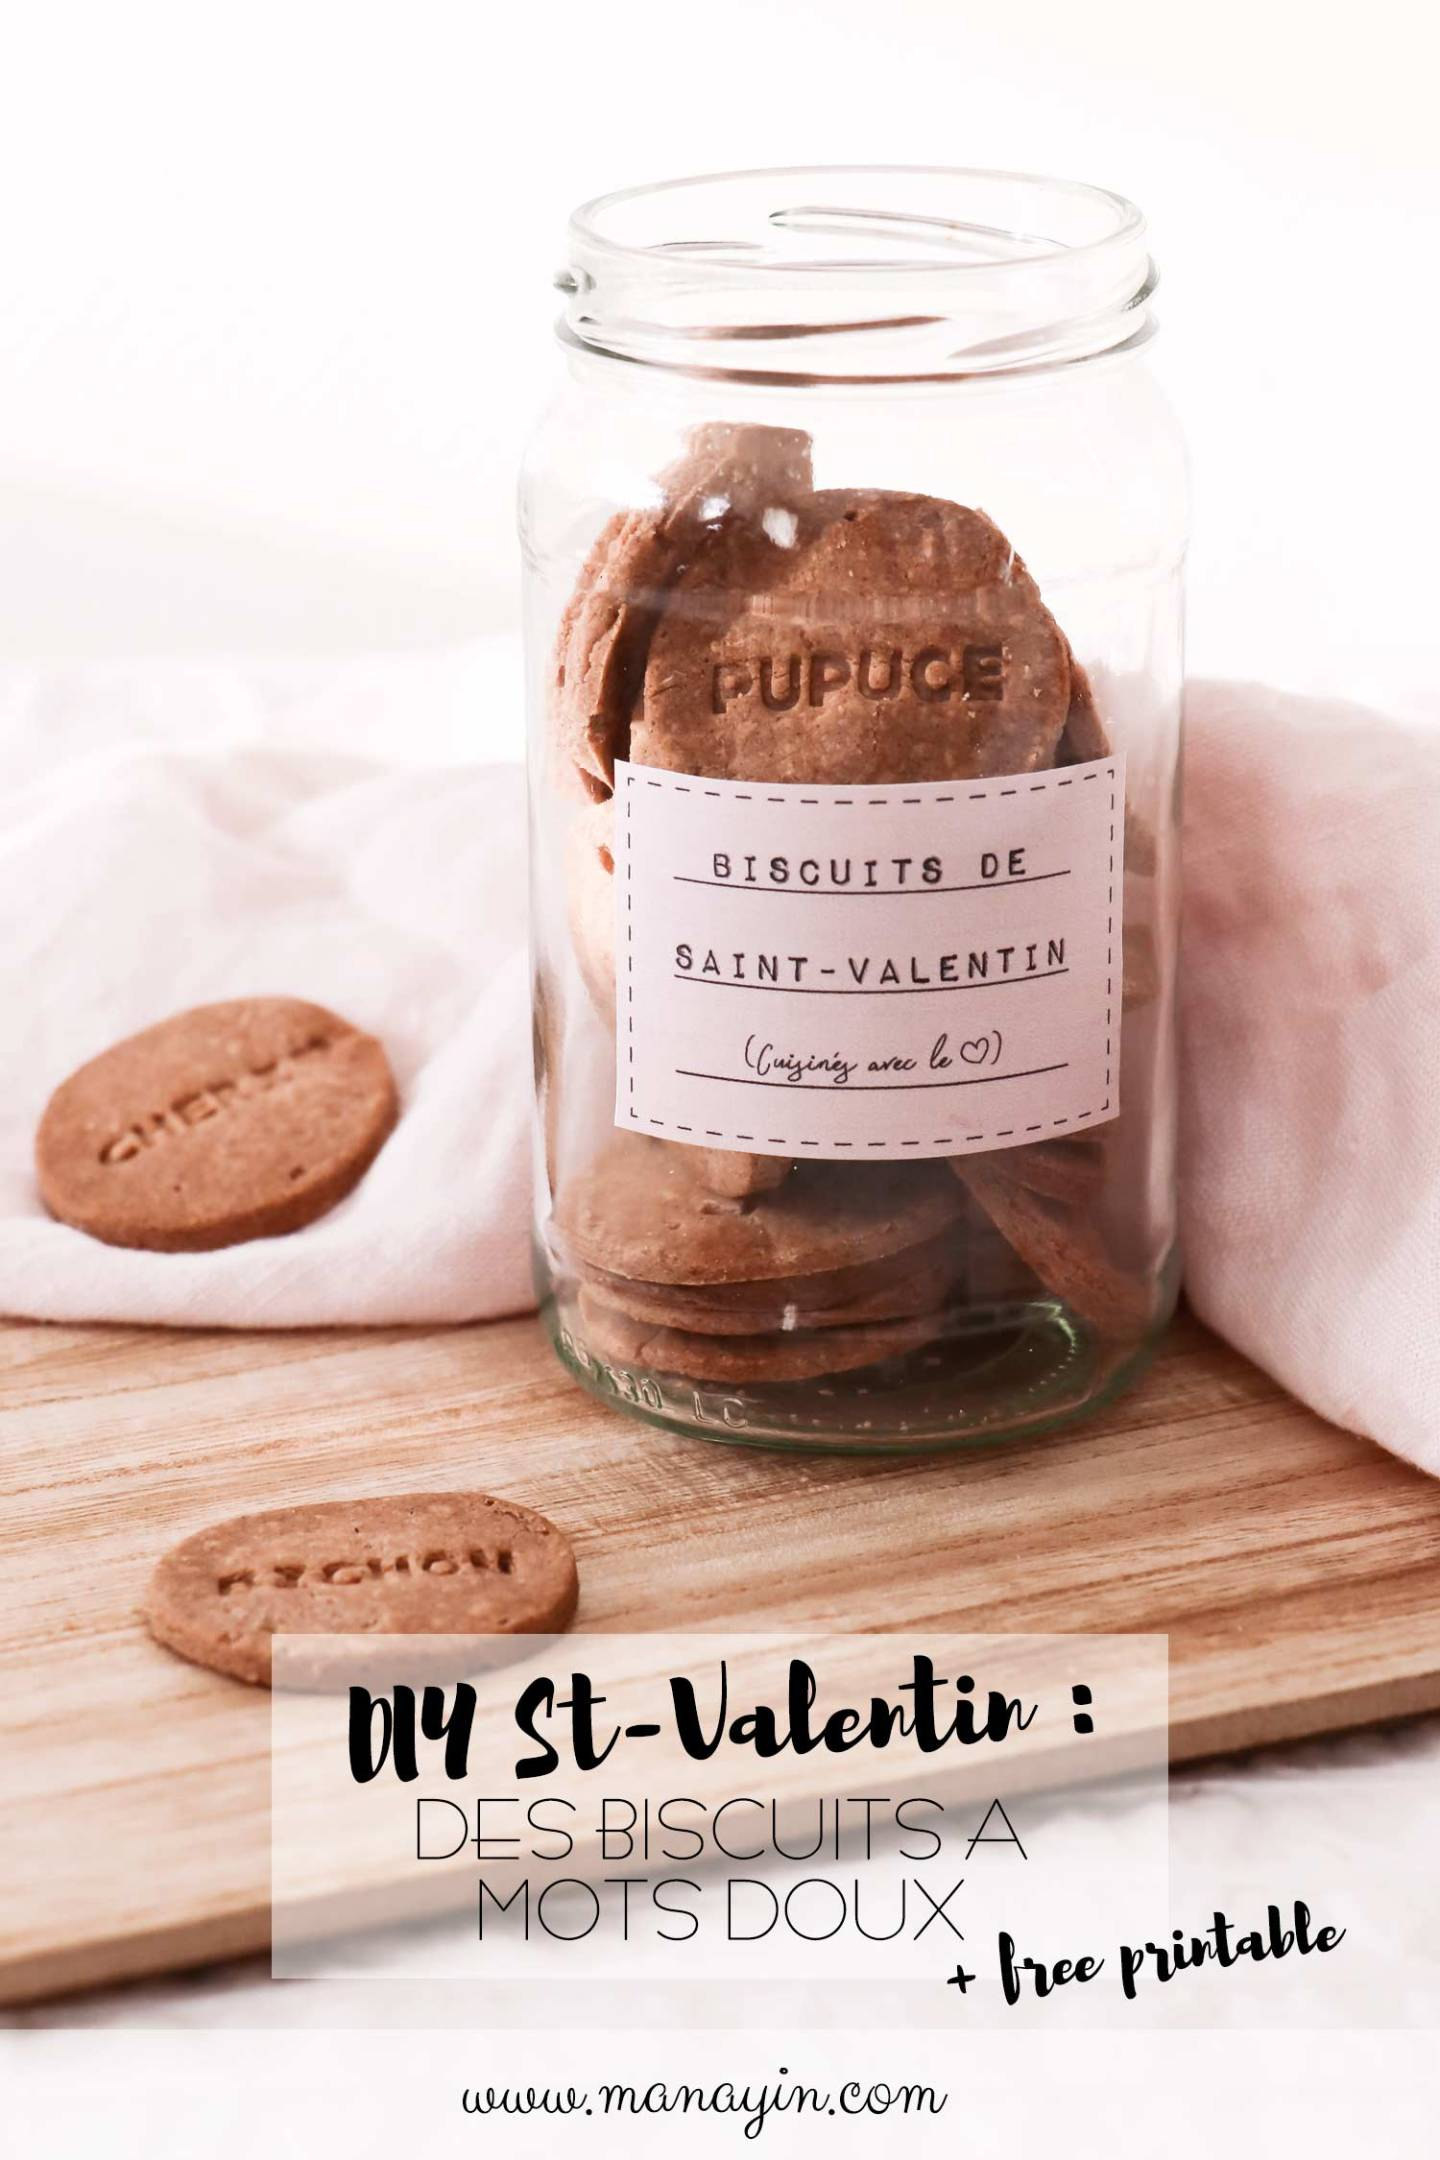 DIY Saint-Valentin biscuits